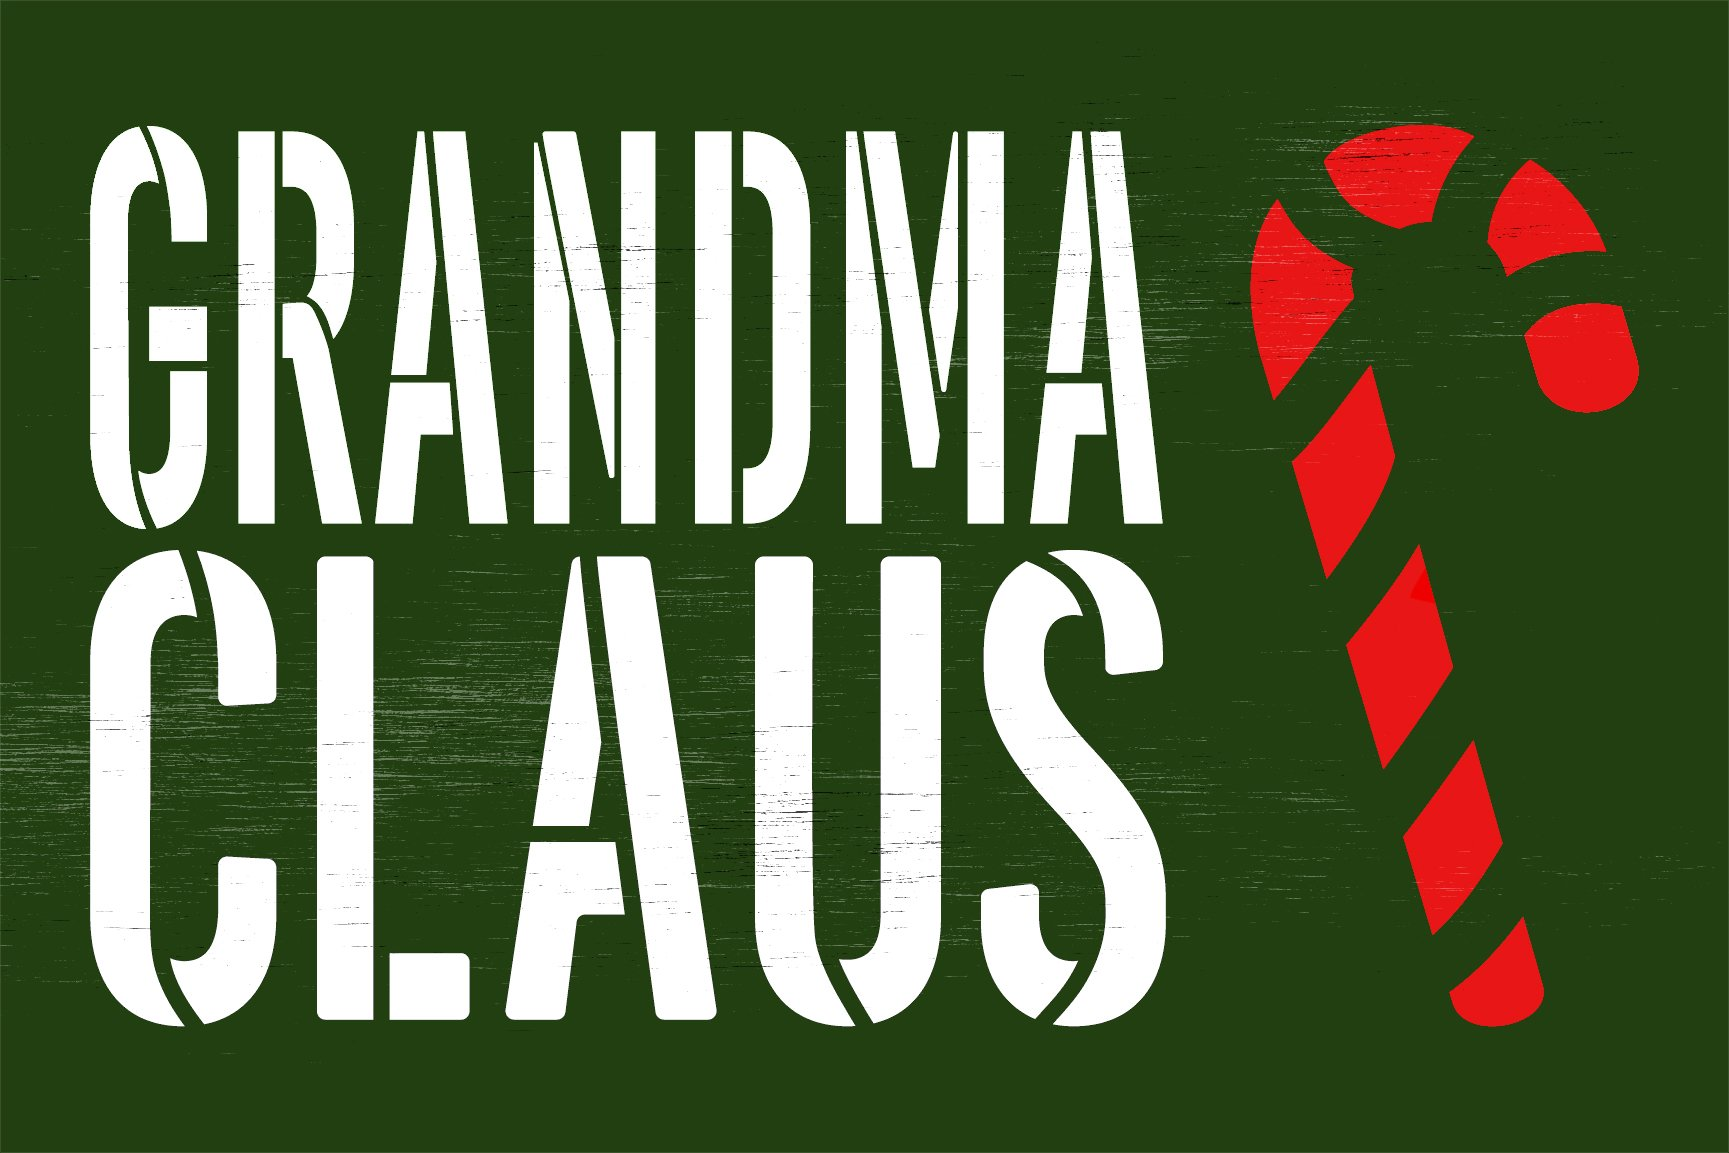 Personalized Claus Stencil with Candy Cane by StudioR12 | DIY Custom Christmas Home Decor | Craft Holiday Wood Signs | Select Size